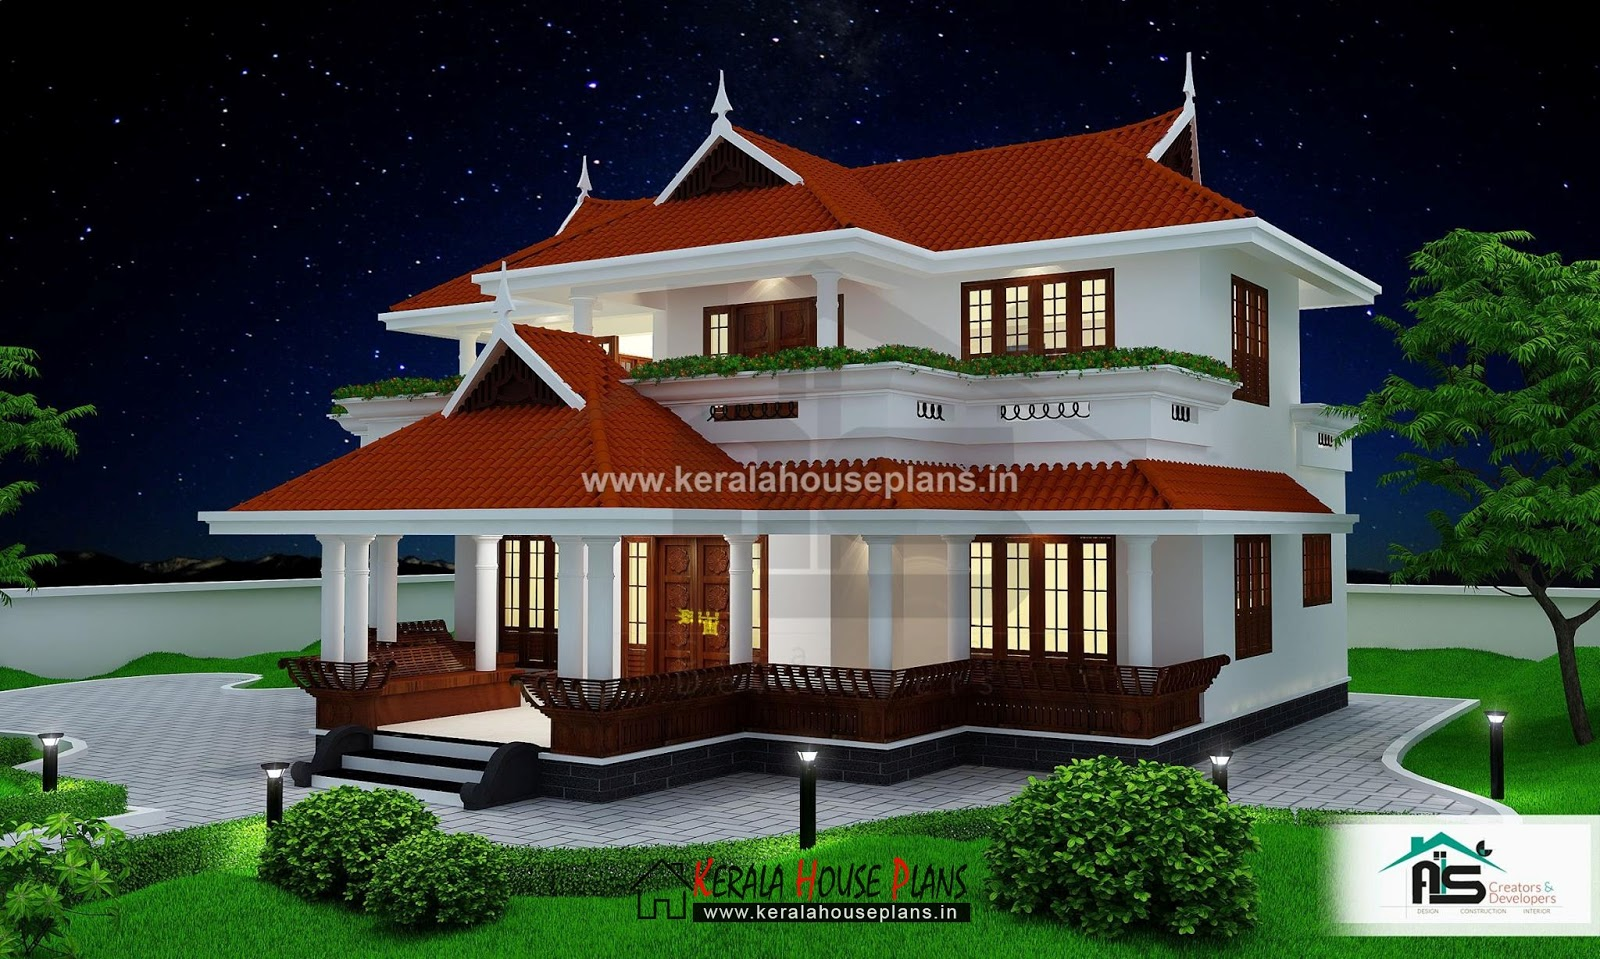 Veedu Plan Kerala Traditional Style Home House